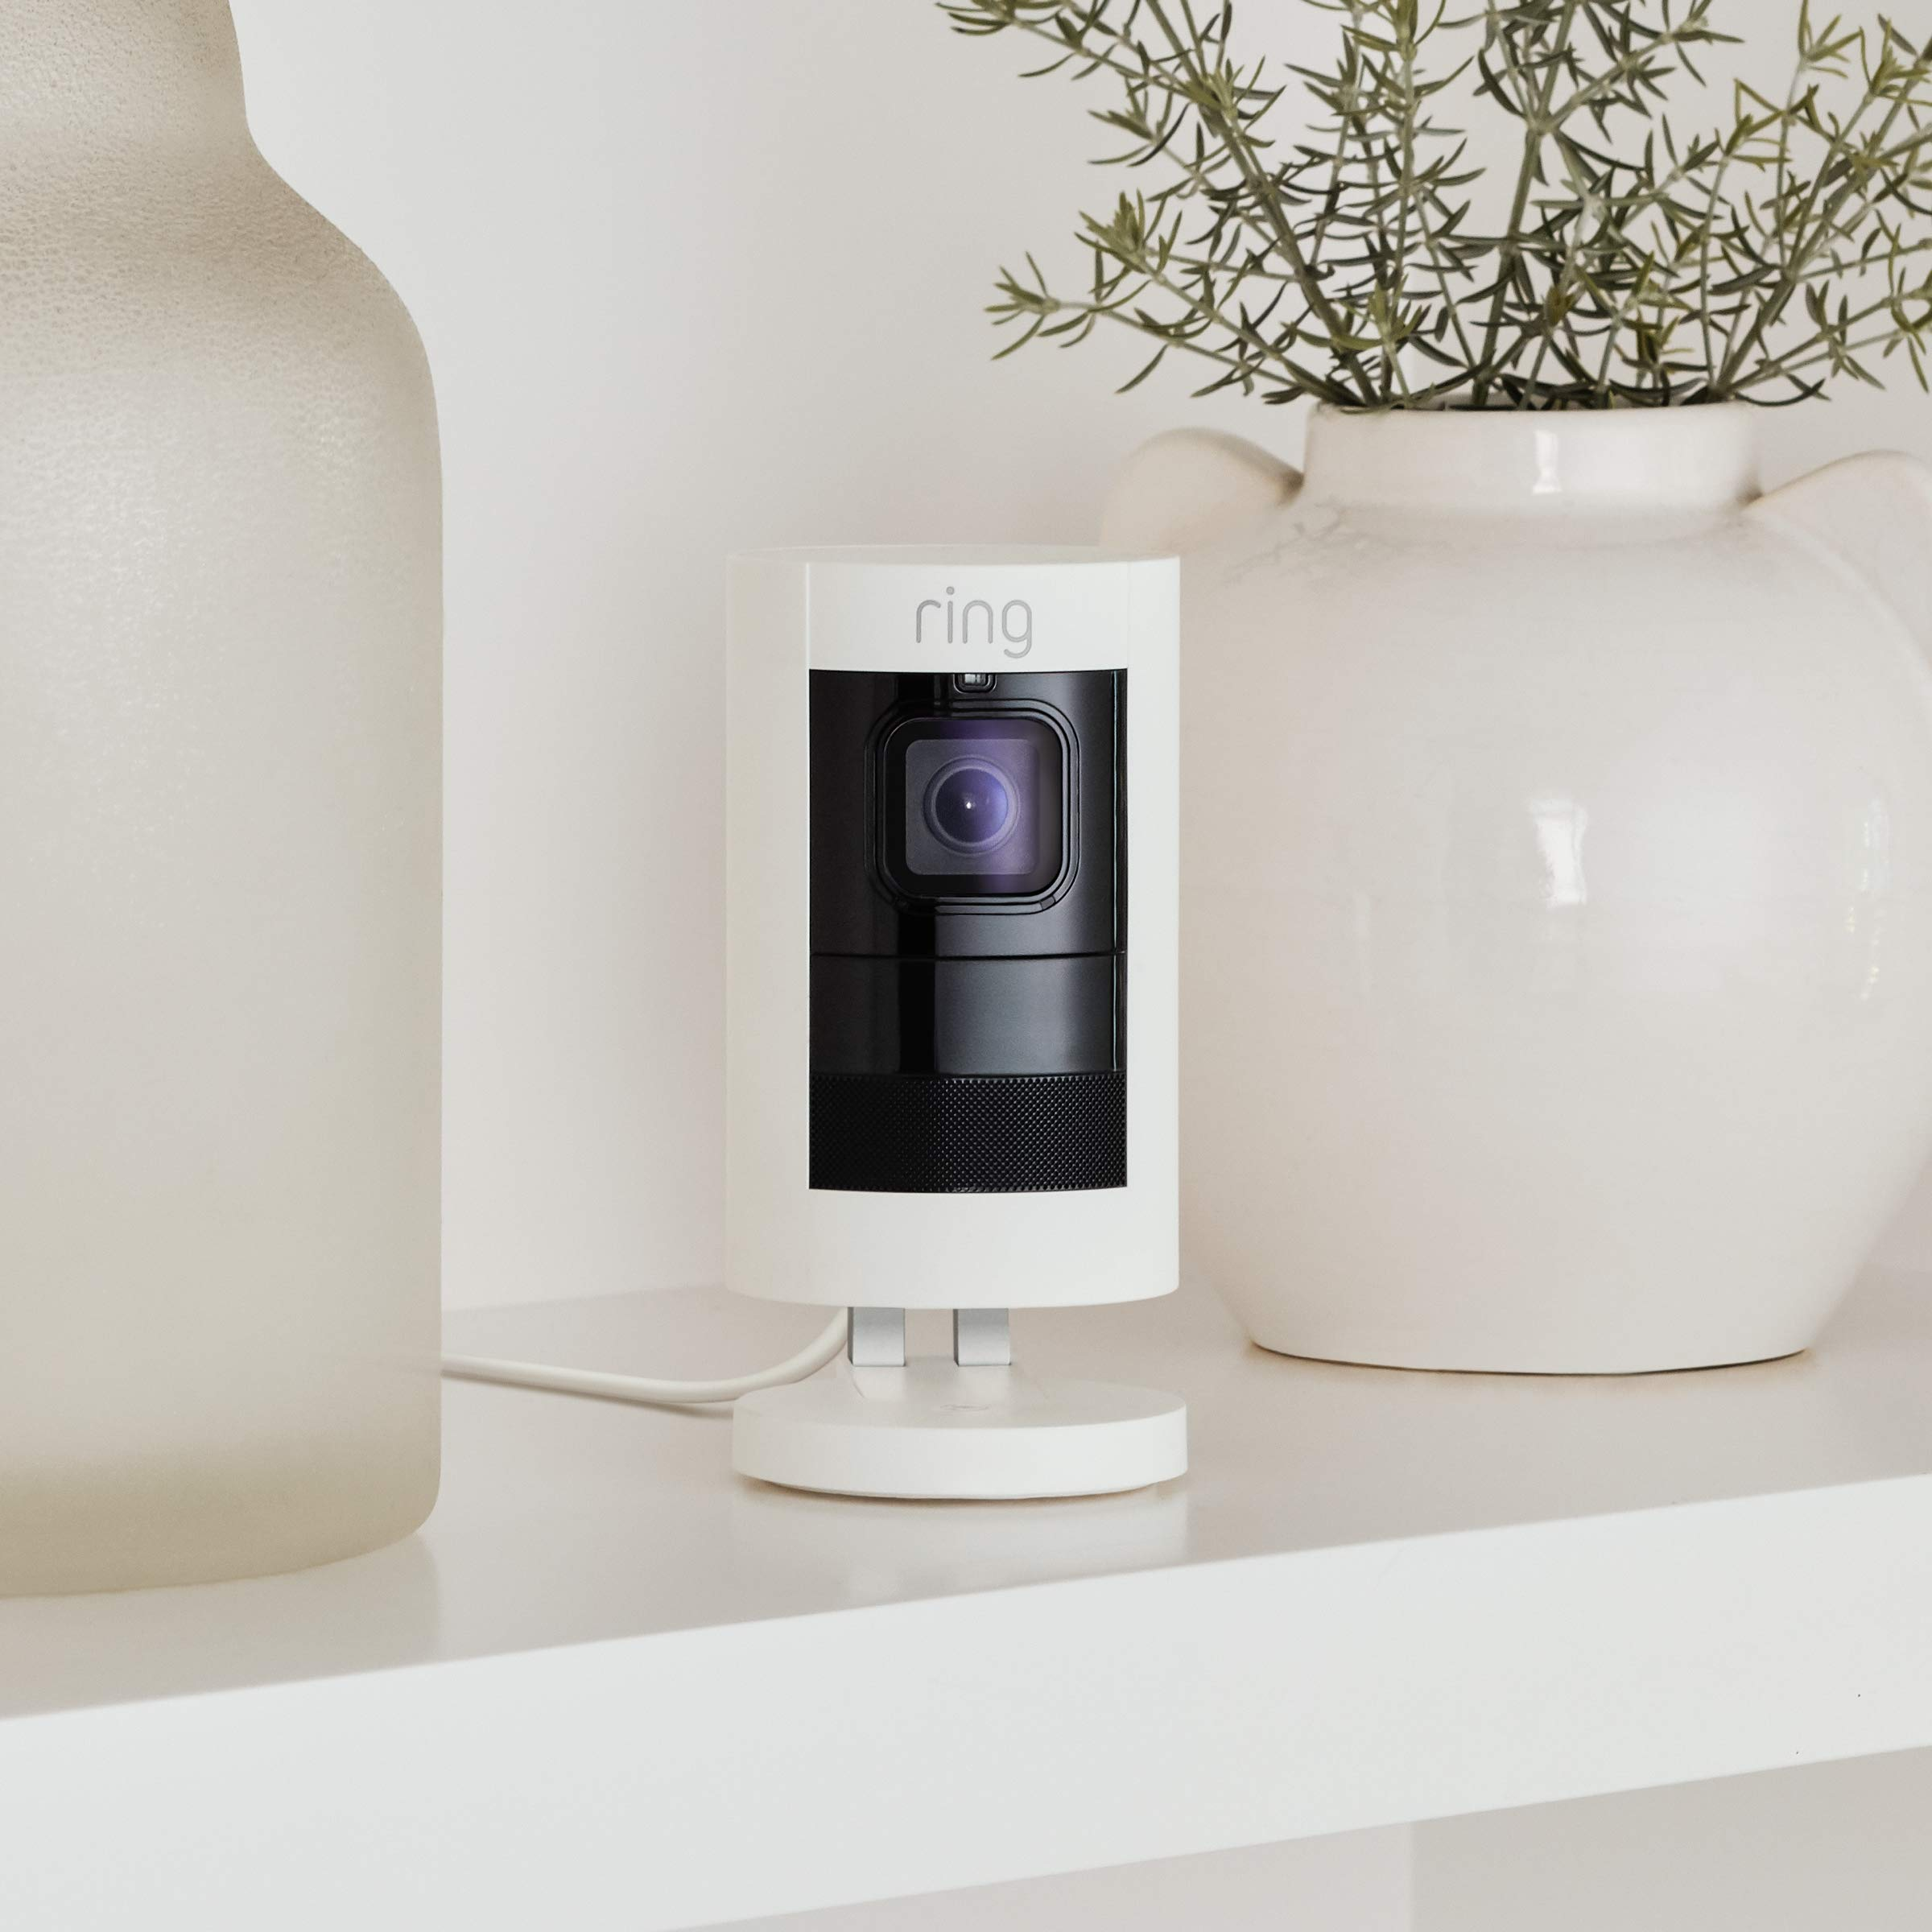 Ring Stick Up Cam Wired HD Security Camera with Two-Way Talk, Night Vision, White, Works with Alexa by Ring (Image #4)